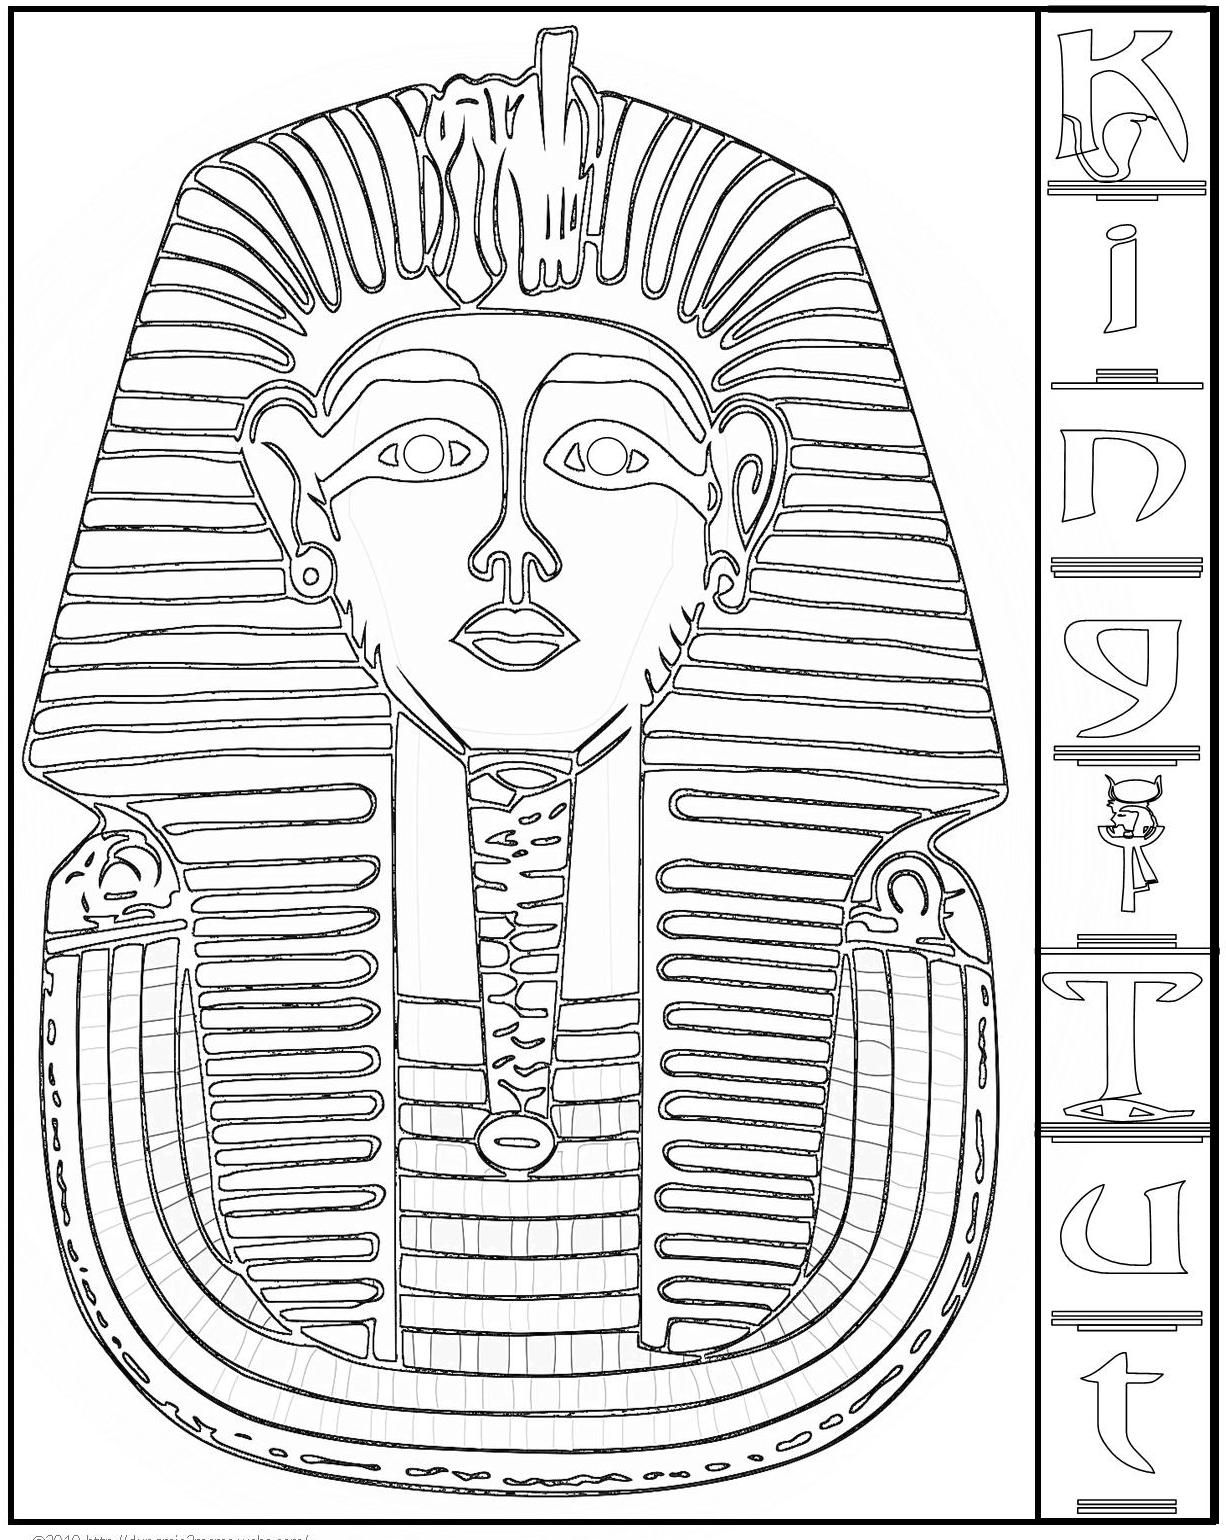 Printable coloring pages kings and queens - Free Coloring Pages Kings And Queens Ancient Civilizations Download